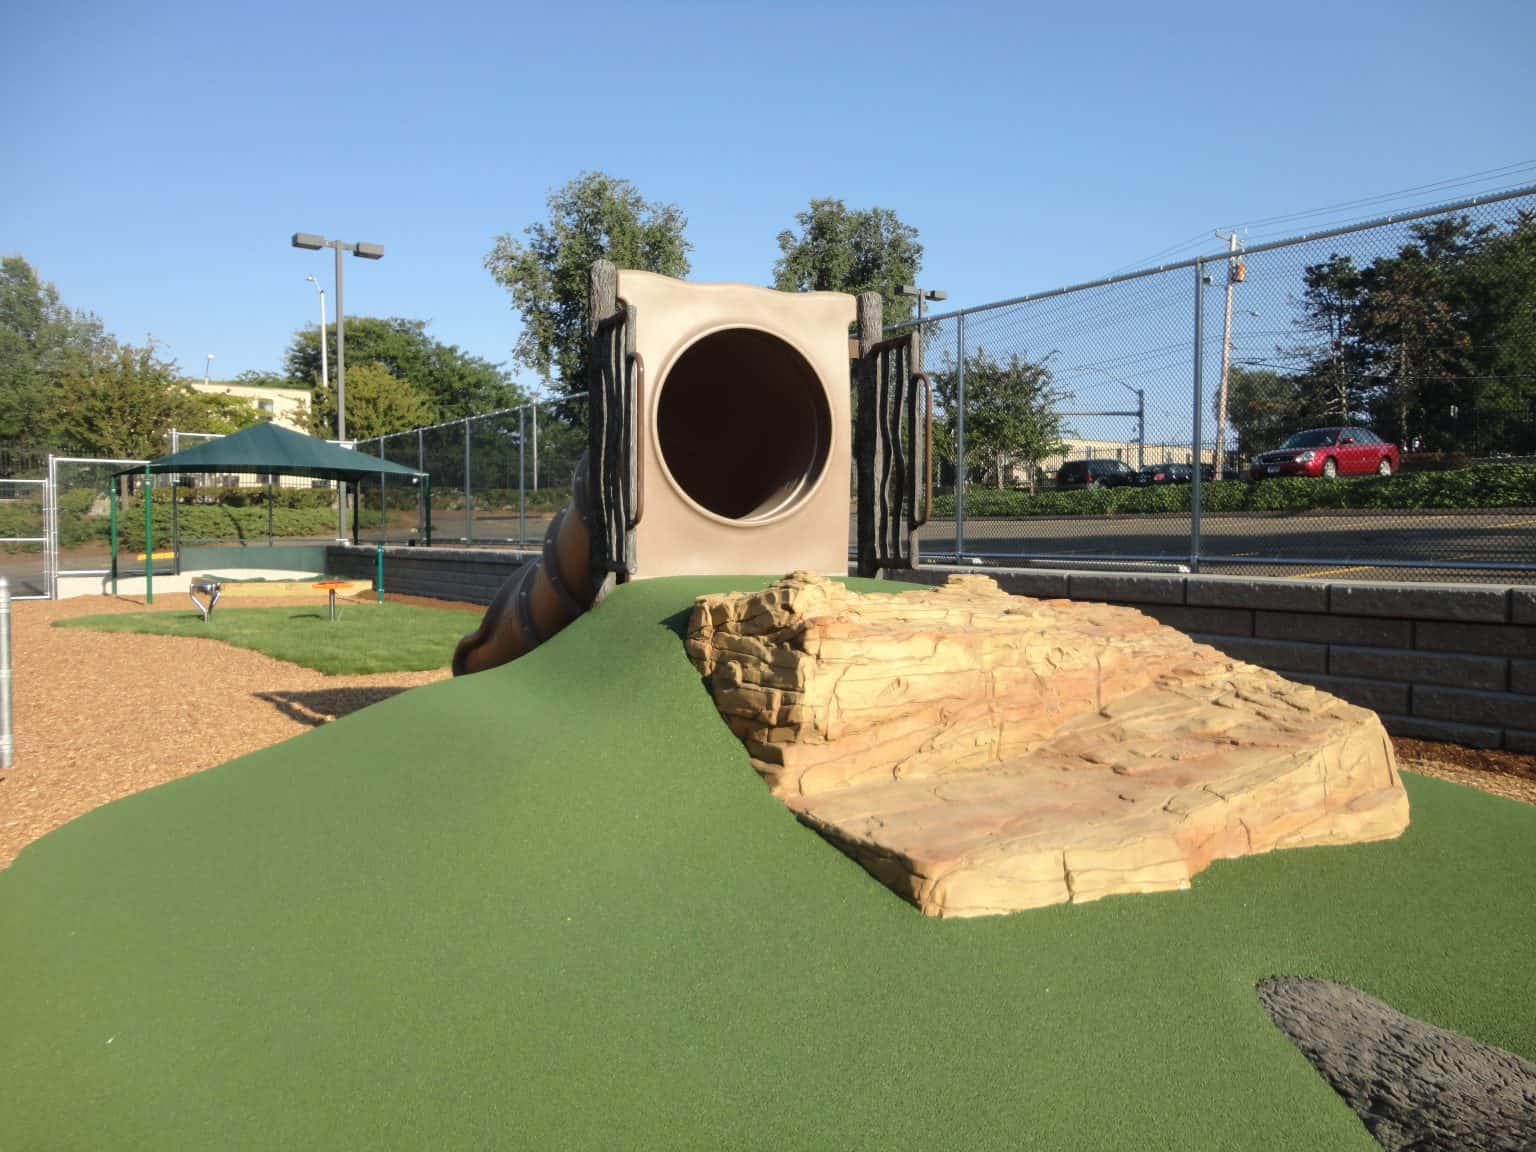 phyllis-bodel-daycare-playground-new-haven-ct_18128653781_o-1536x1152